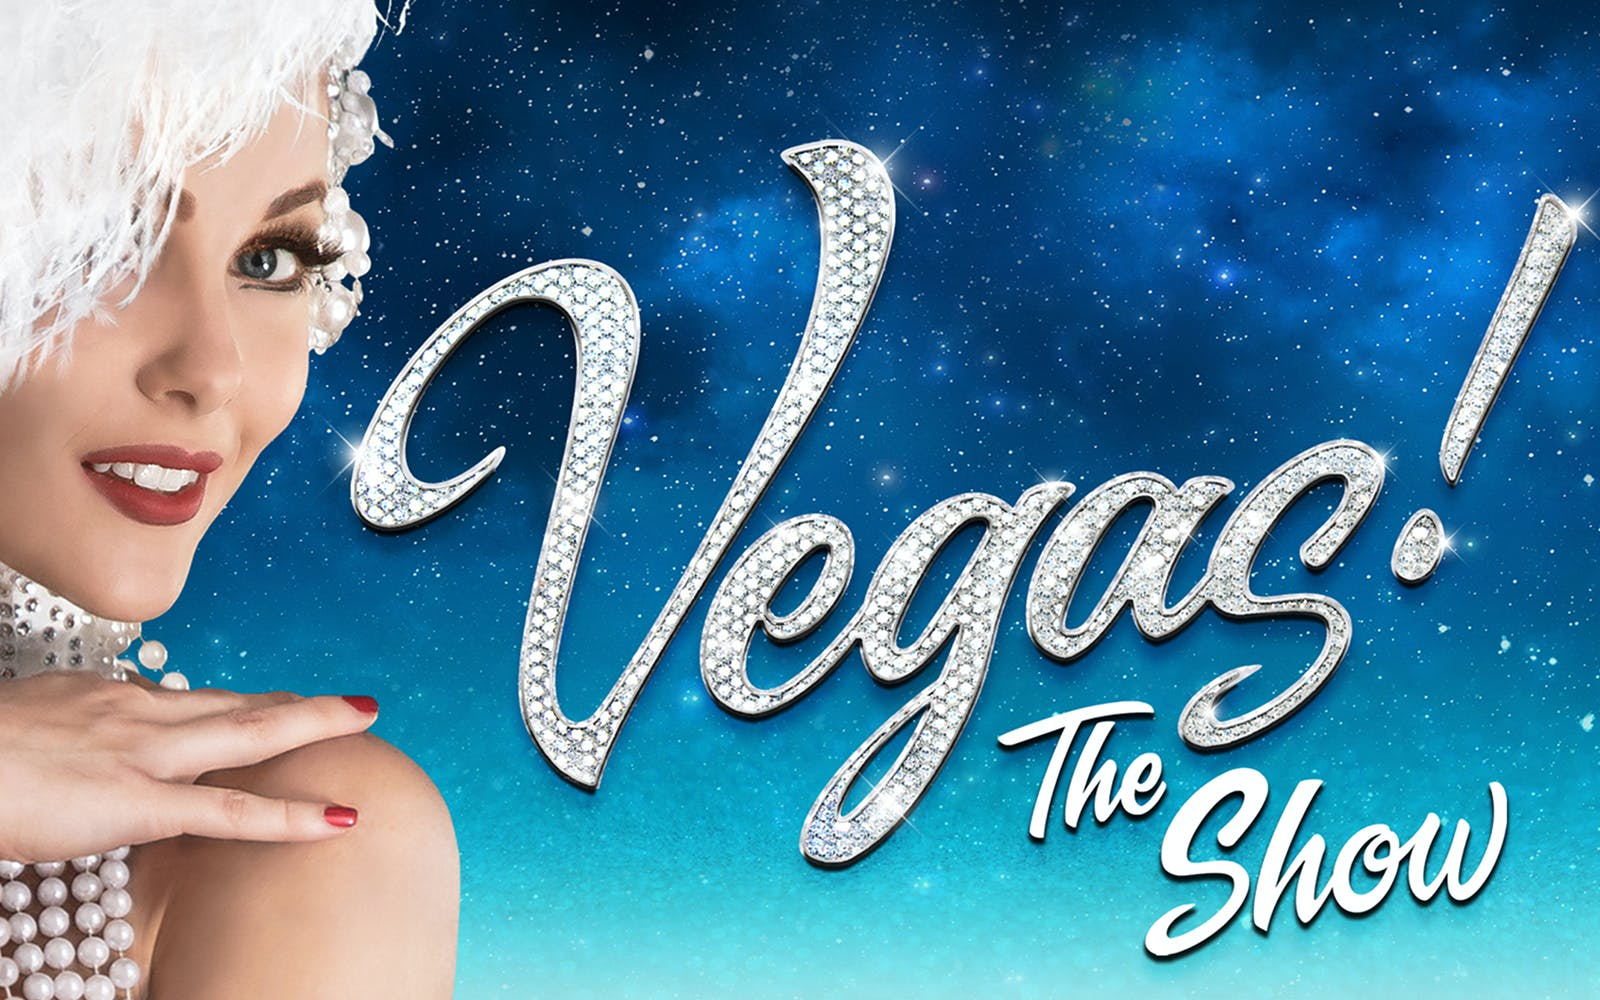 VEGAS! - The show